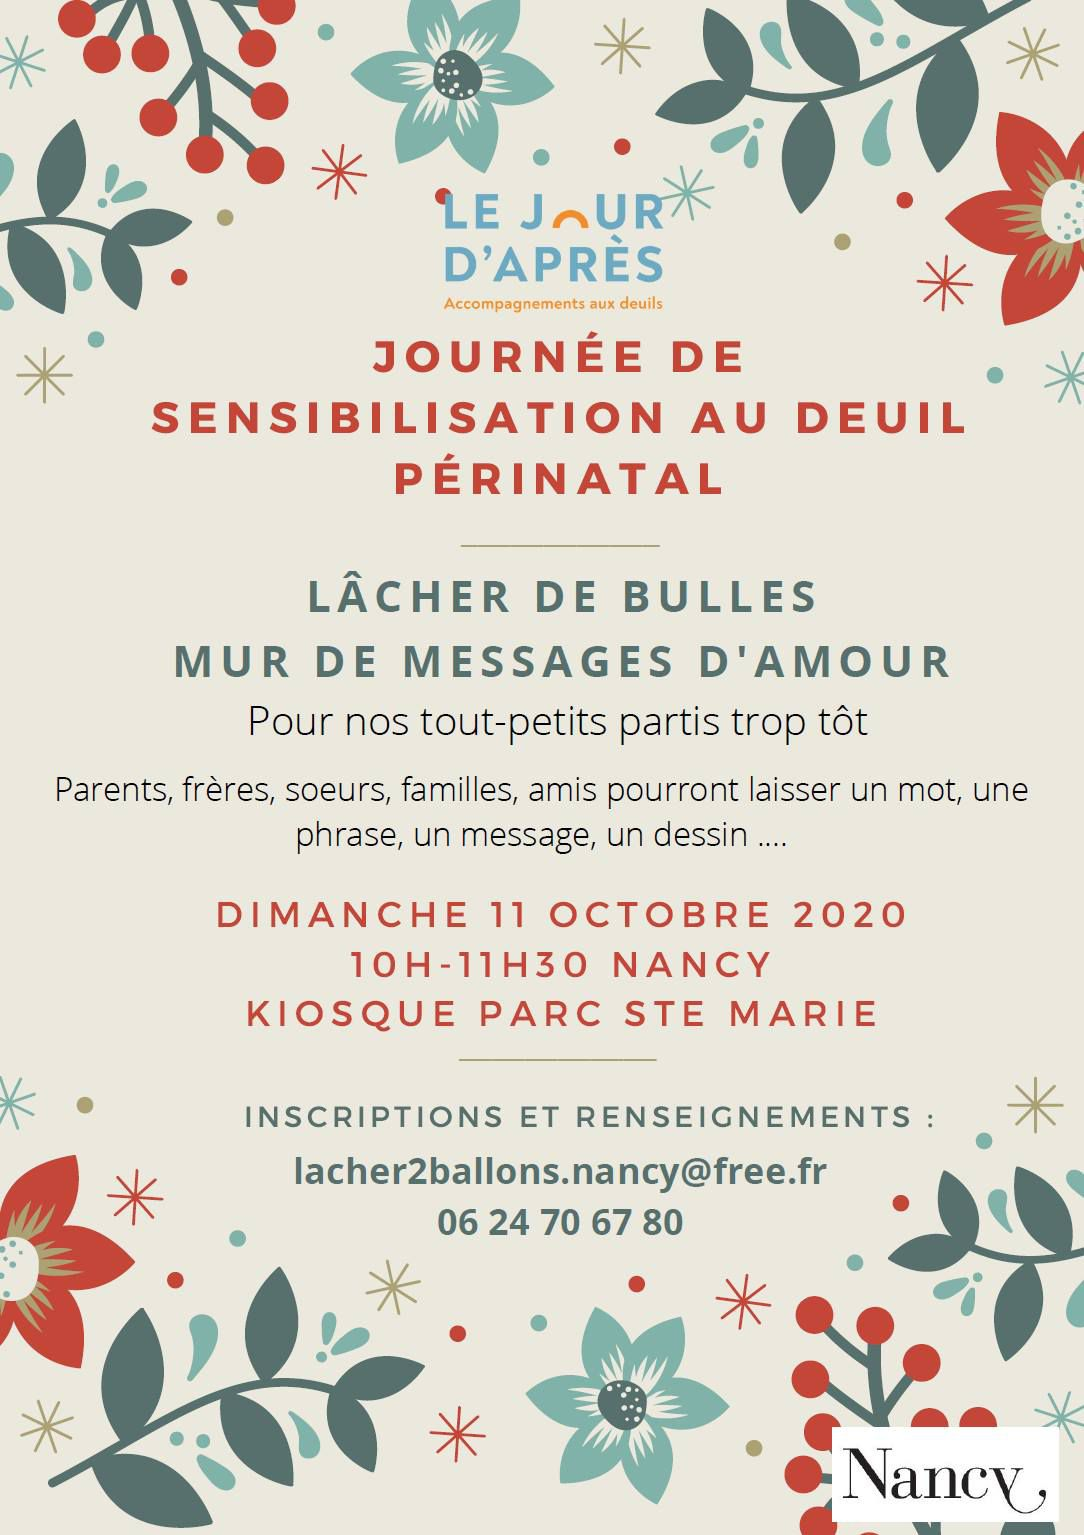 Nancy Journée Internationale de Sensibilisation au Deuil Périnatal 11 octobre 2020